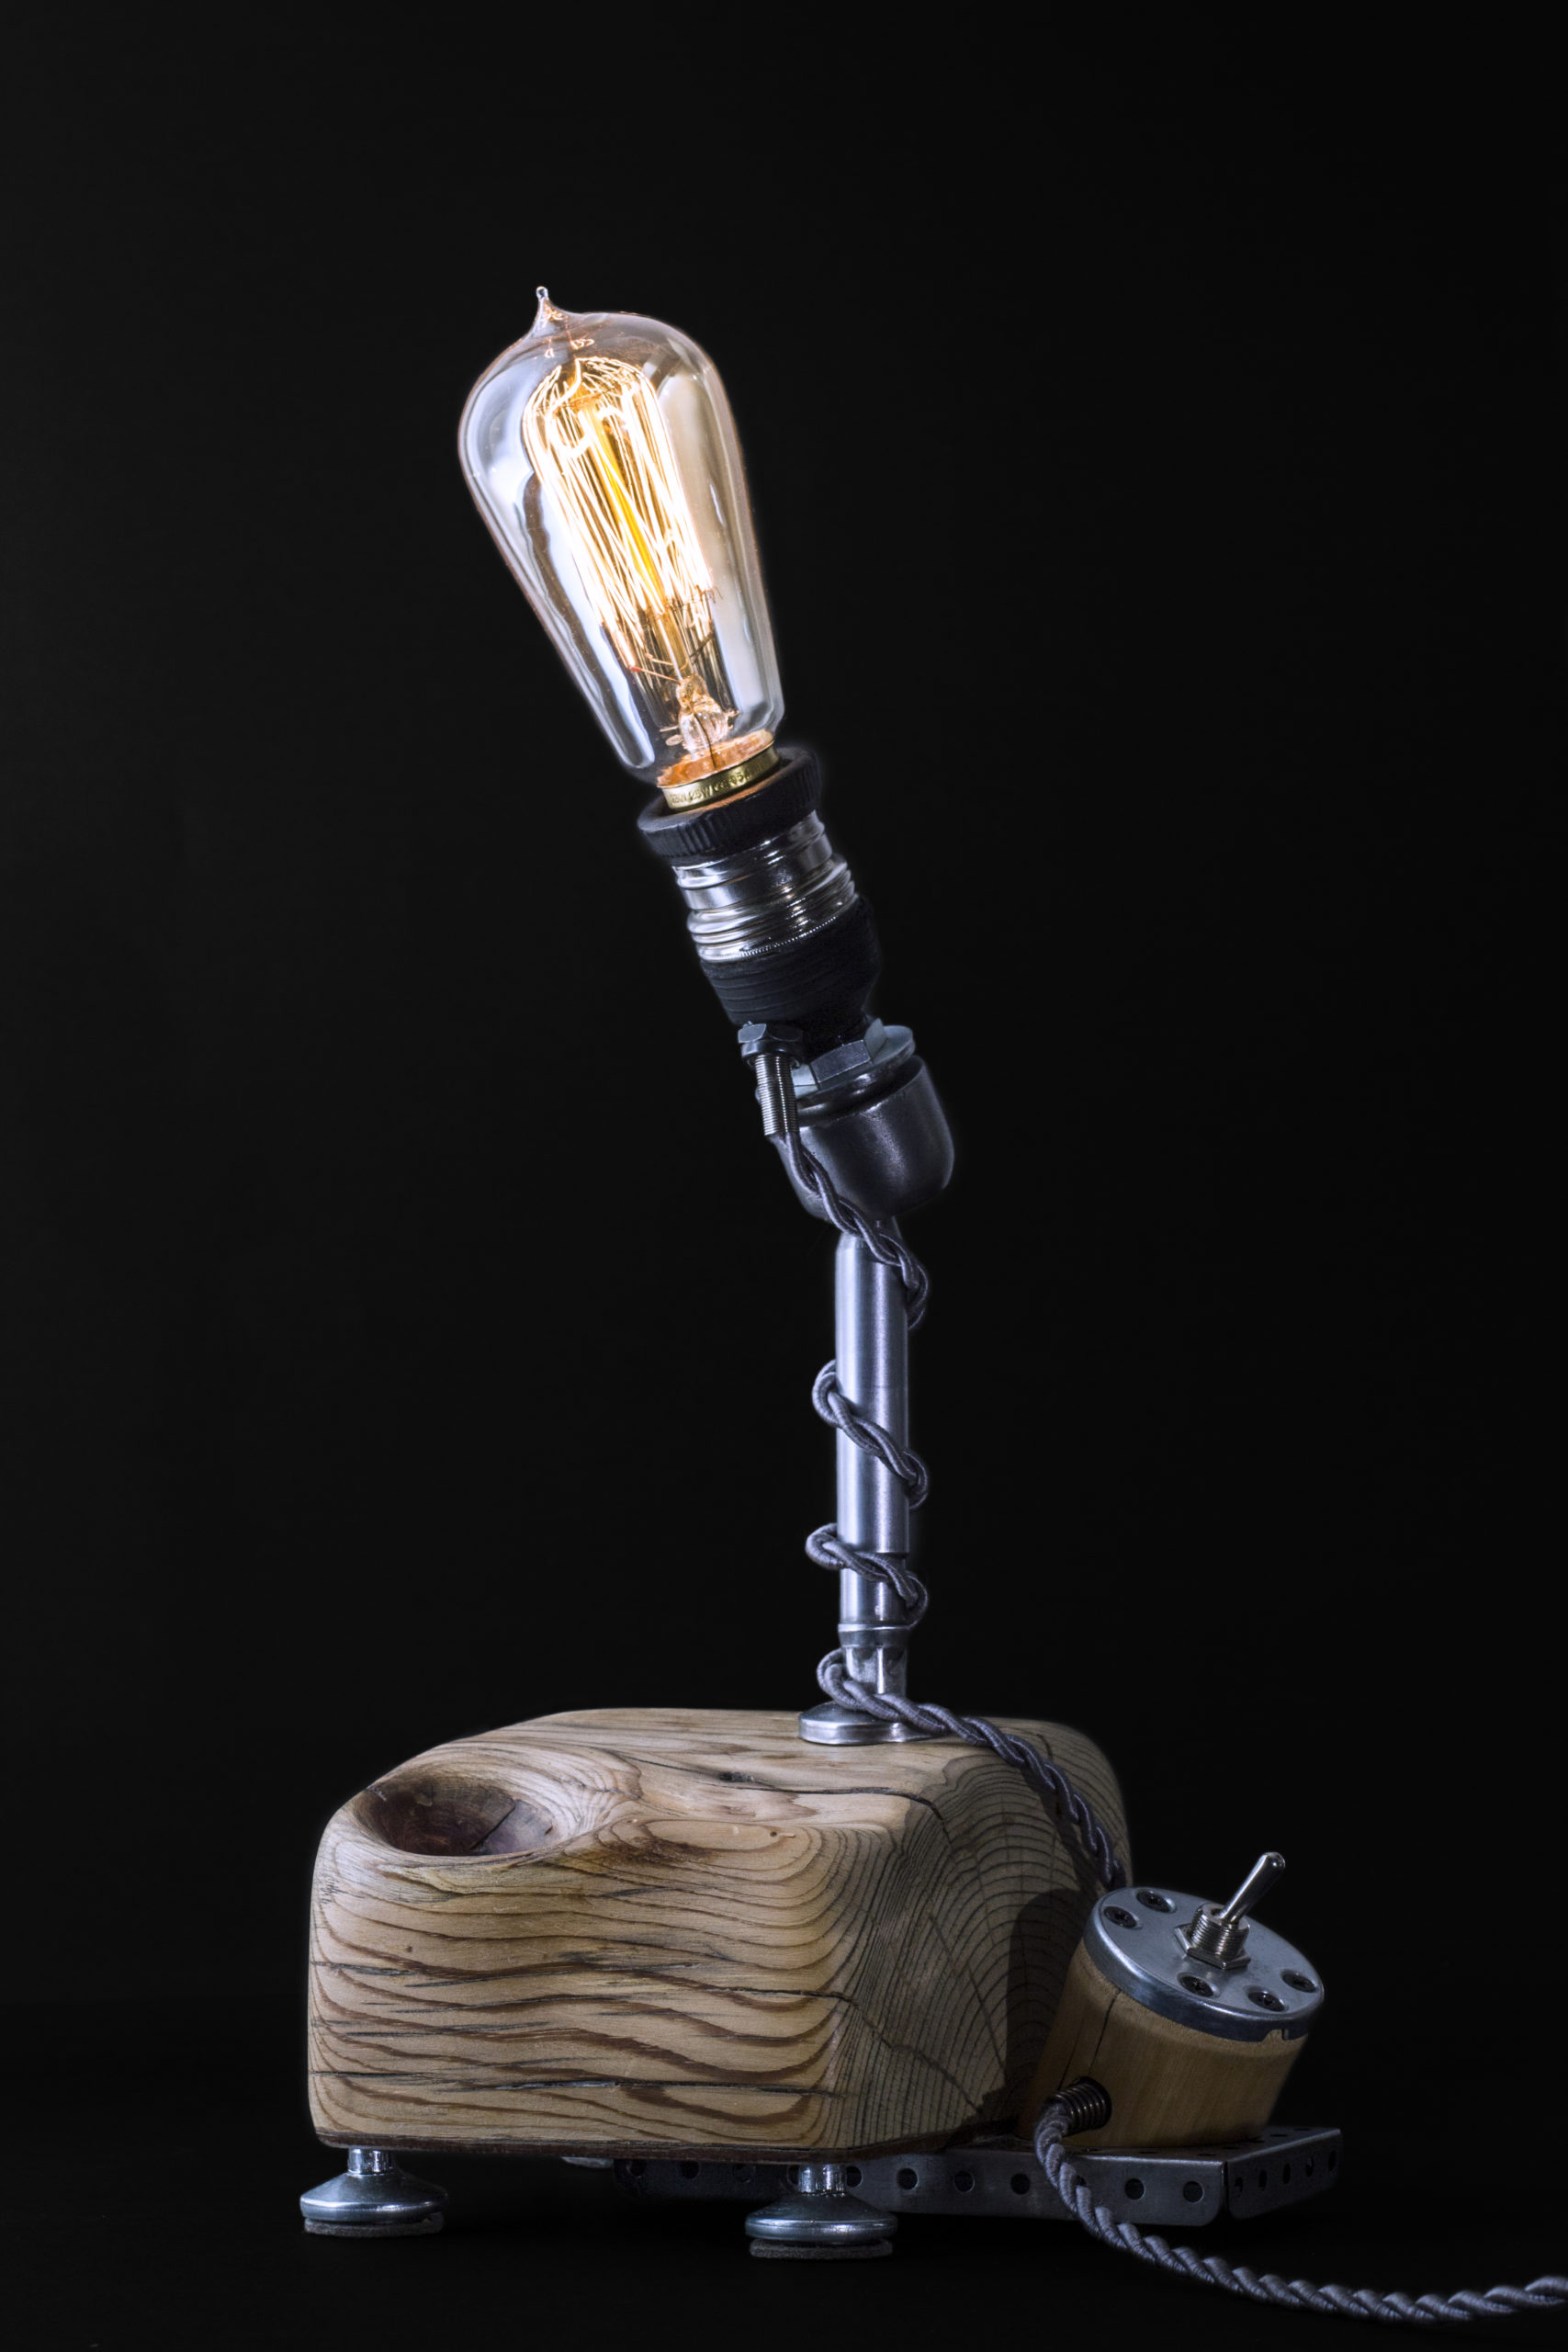 BALL-JOINT LAMP 2 ART BY CHEM